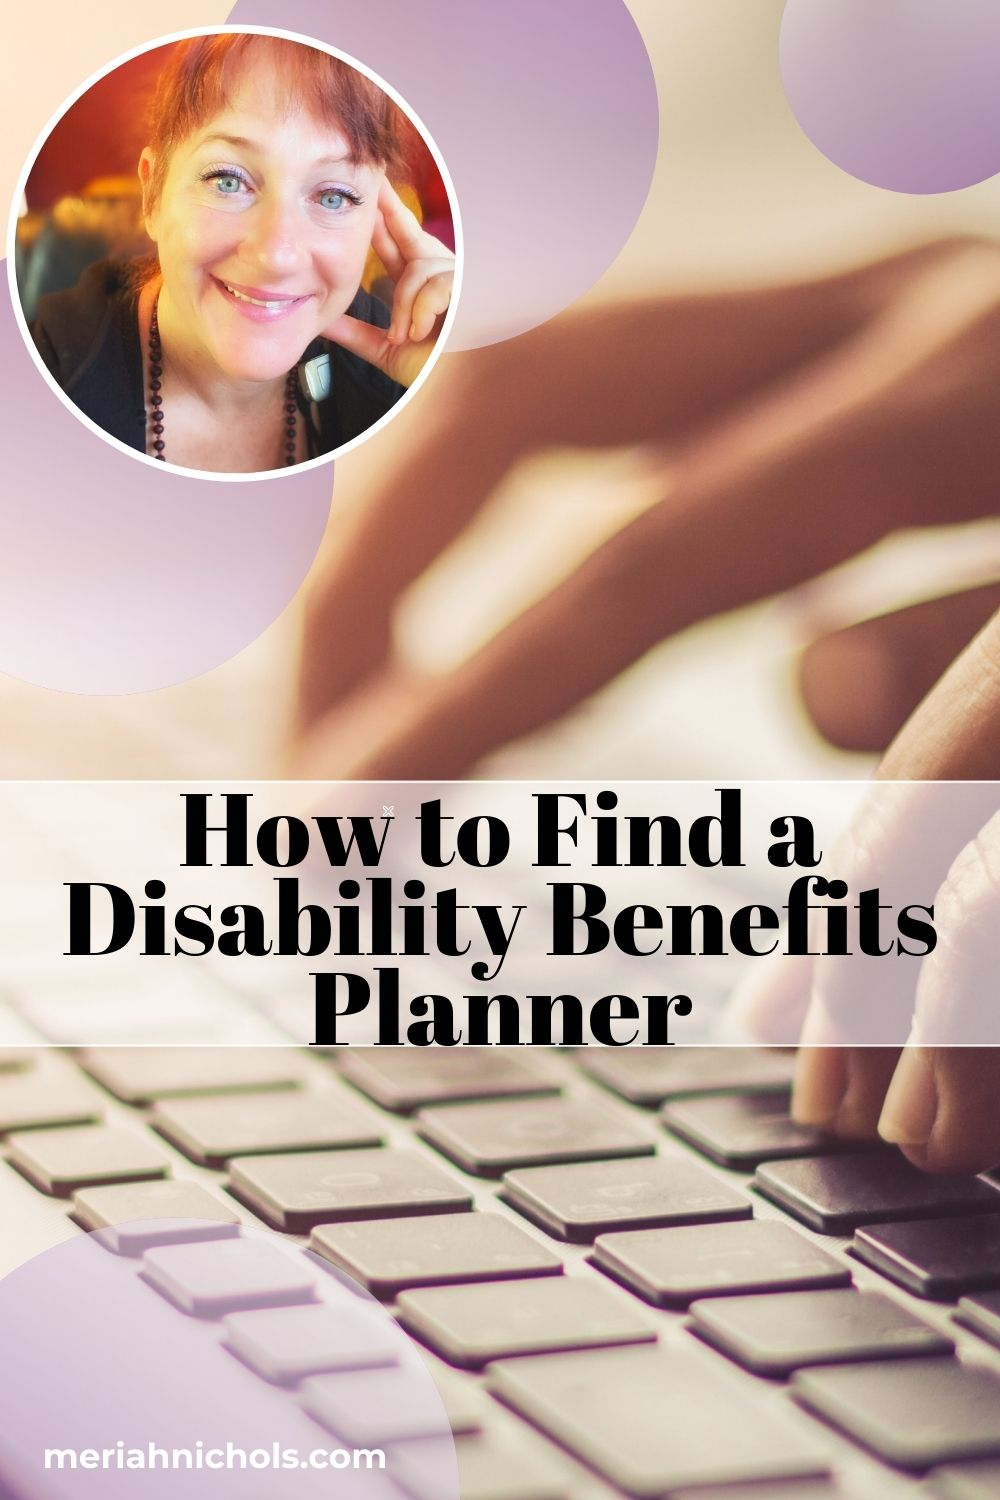 "[ID: image of a keyboard and fingers typing, with a search bar in front, text reading ""How to find a disability benefits planner?' at the top left, there is a circular image of a woman smiling with her hands resting against her temples. she is white, with red hair and blue eyes]"